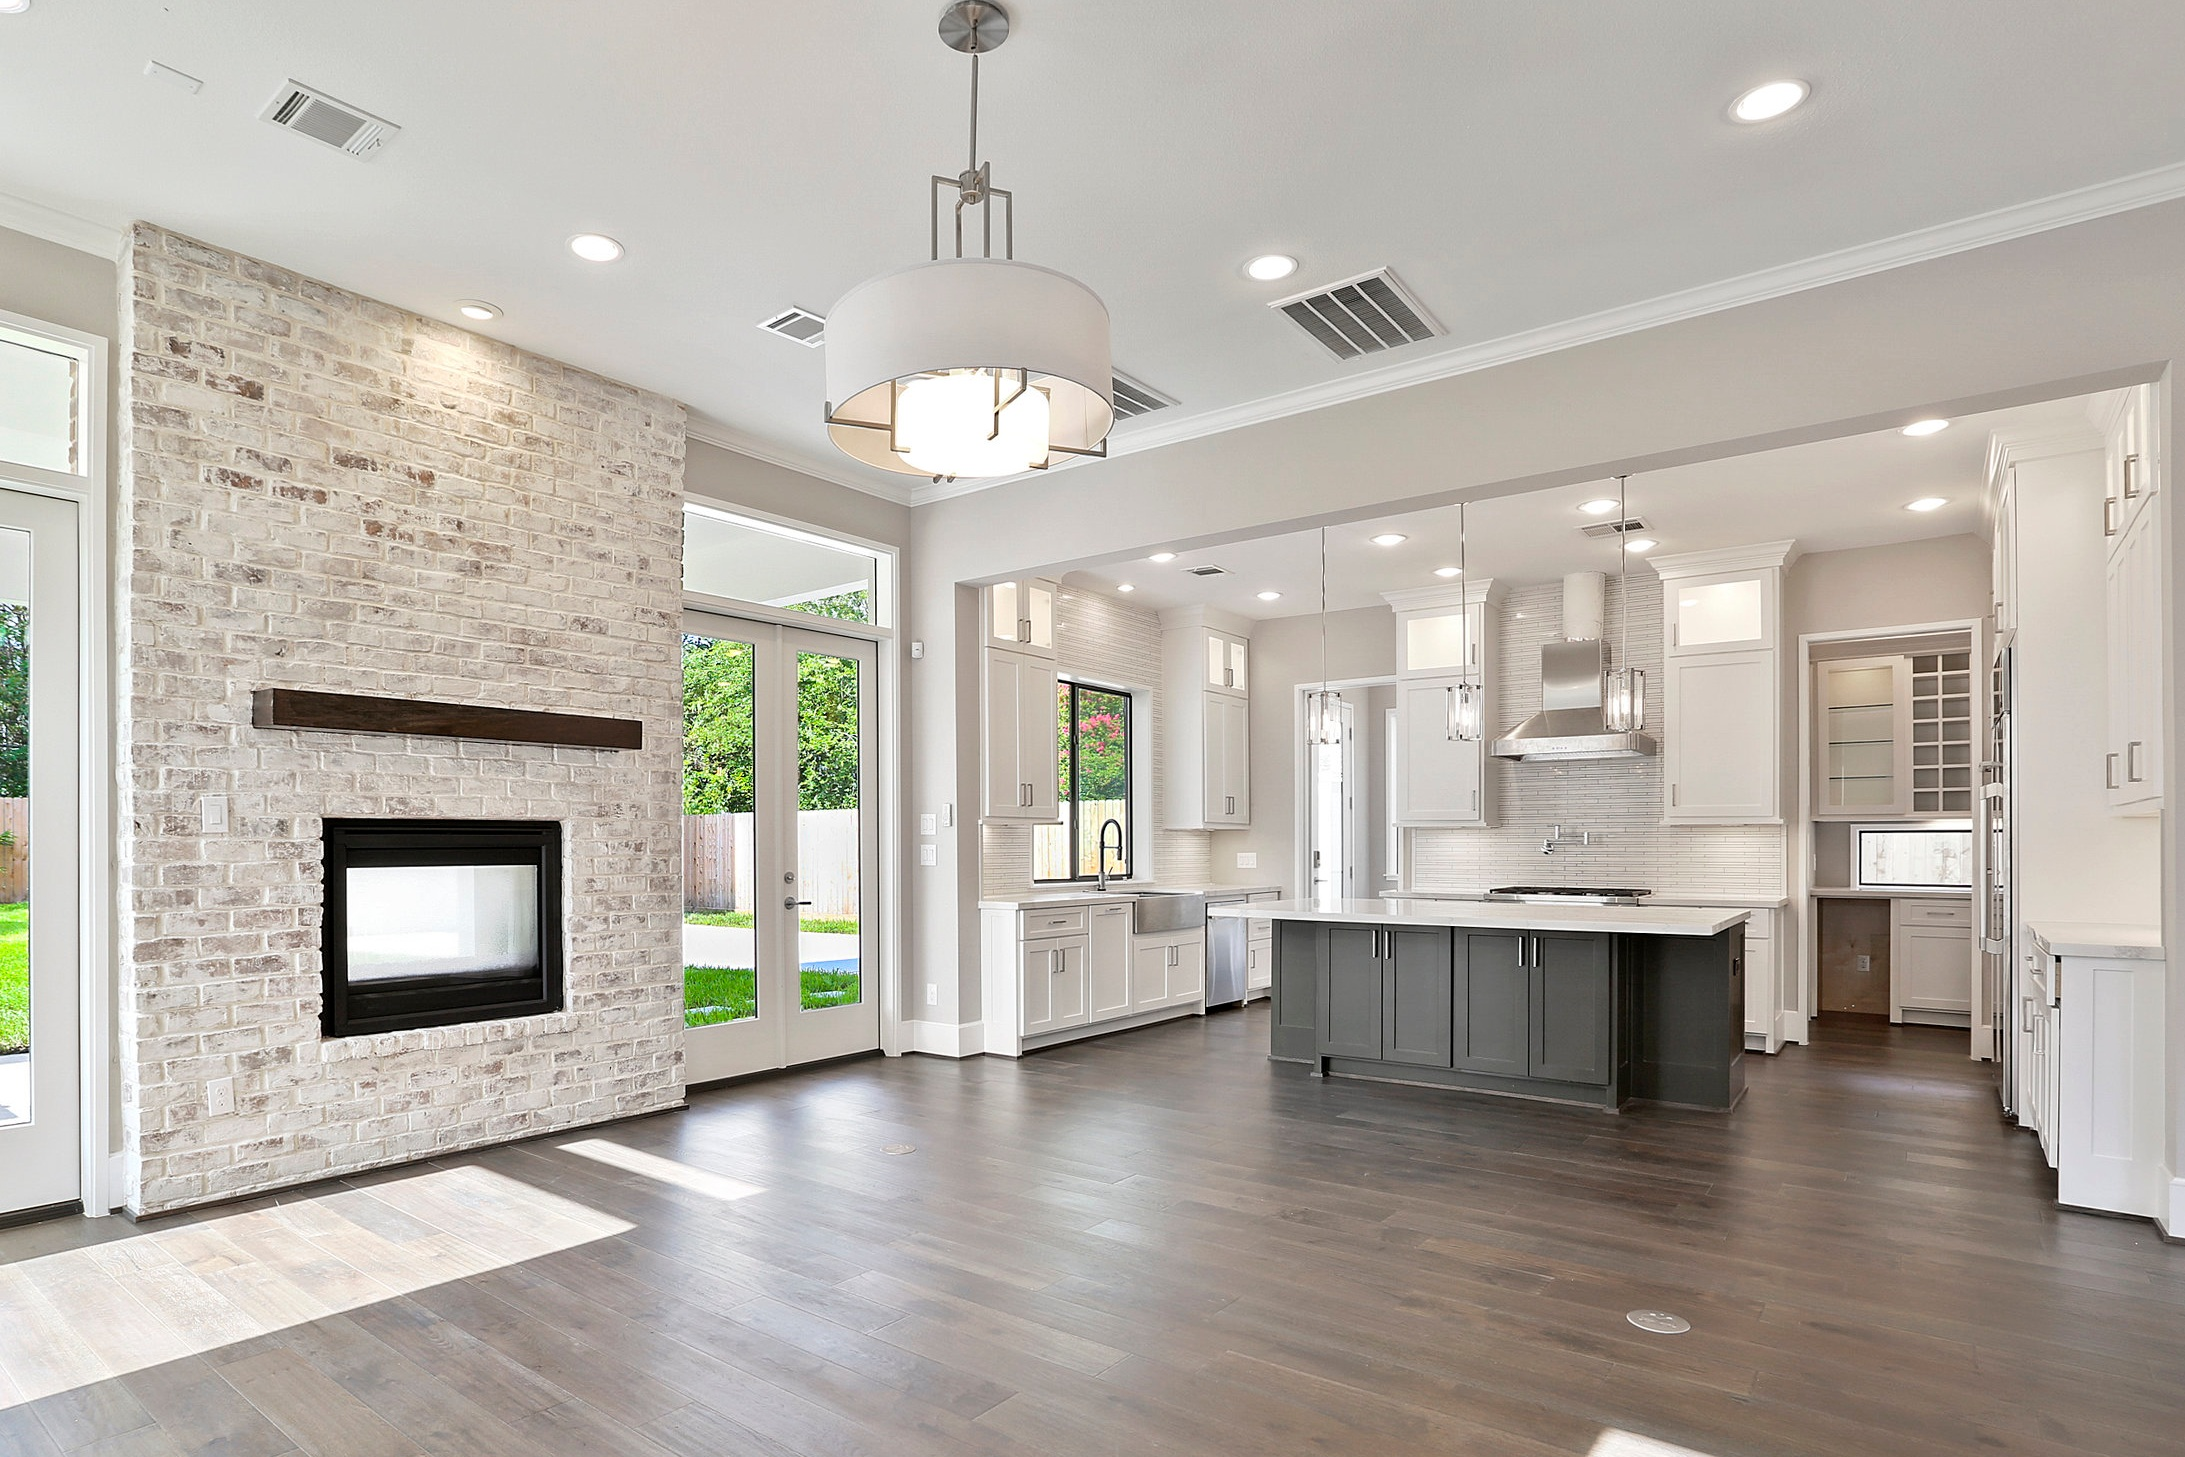 Homeowner new build. Design by REI Design Solutions